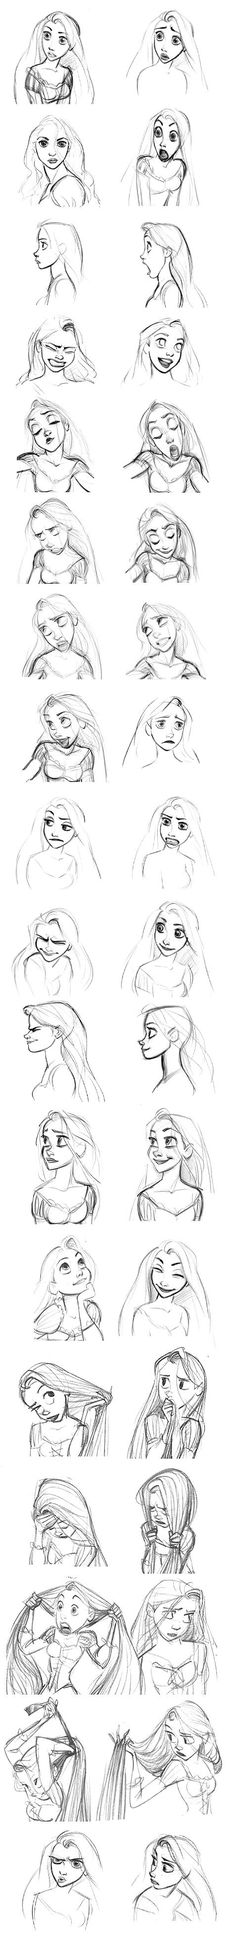 New Disney Art Drawings Sketches Character Design Facial Expressions Ideas Doodle Drawing, Drawing Sketches, Art Drawings, Drawing Faces, Drawing Tips, Sketching, Disney Sketches, Disney Drawings, Drawing Disney